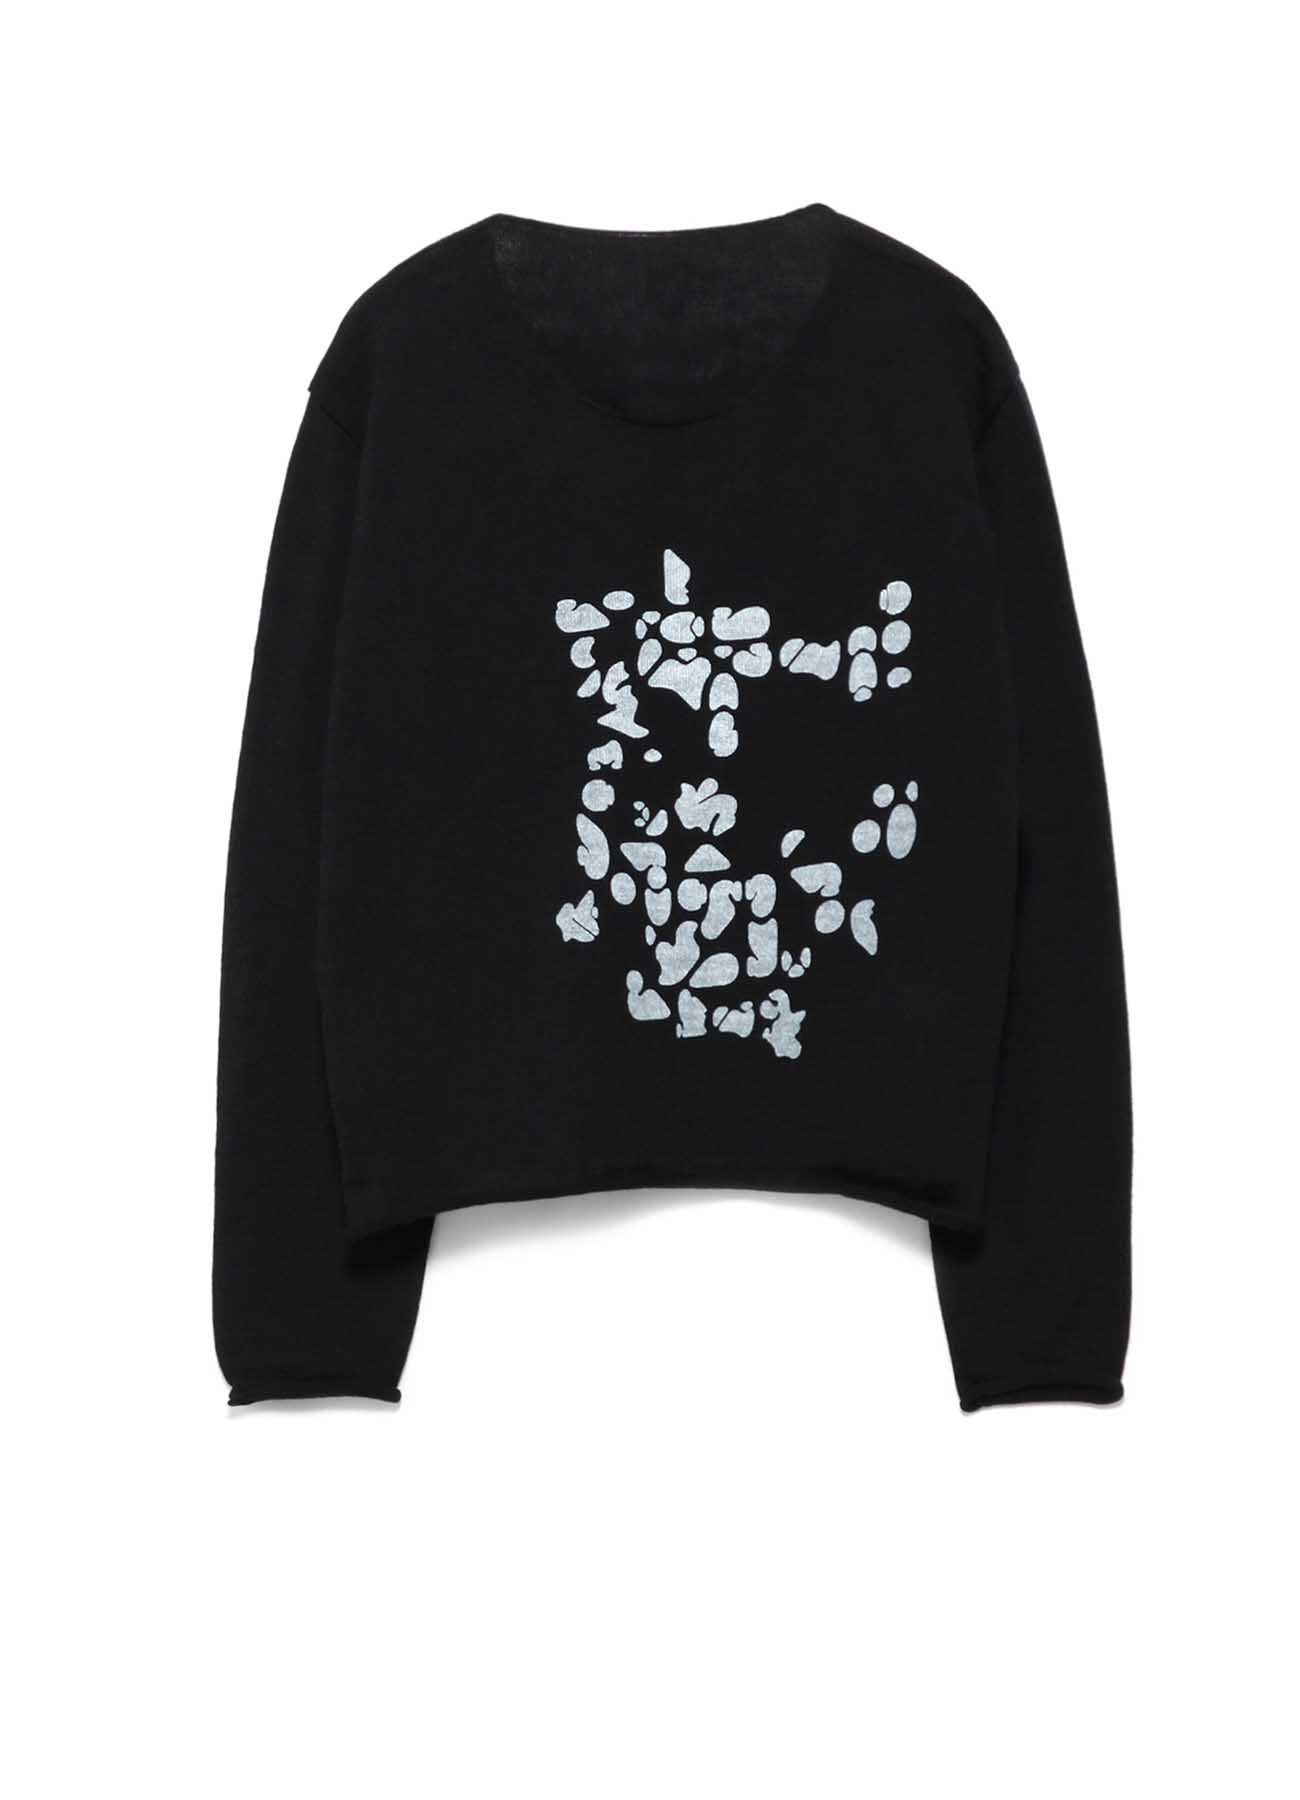 NUMBER PIGMENT PRINT ROUND NECK PULLOVER